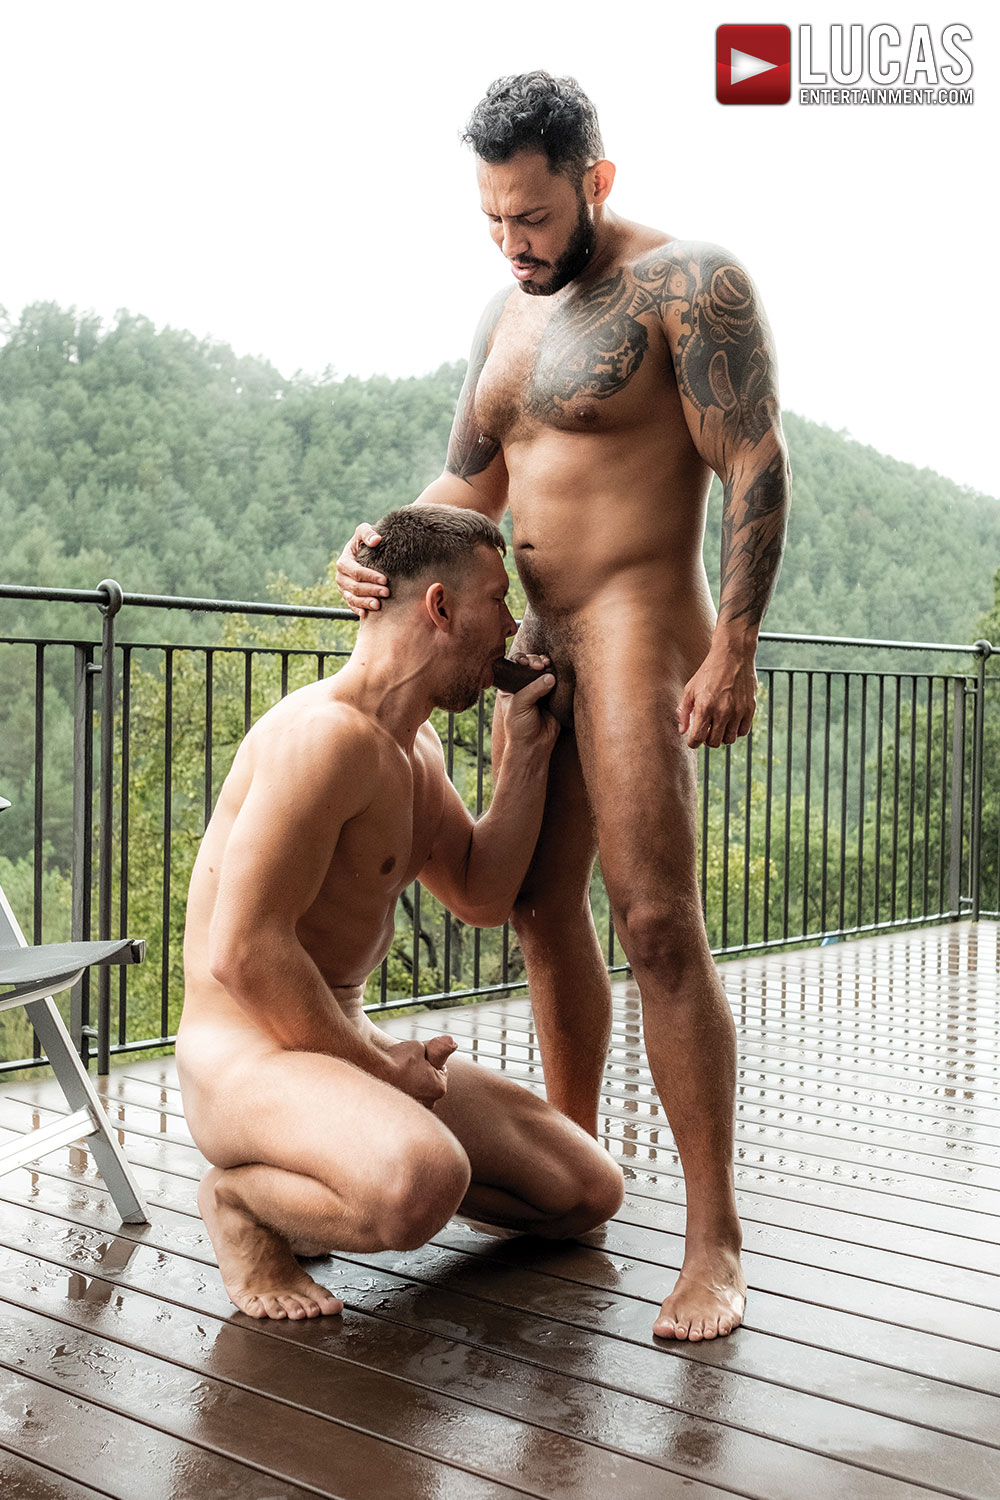 Viktor Rom Splits Andrey Vic's Ass - Gay Movies - Lucas Entertainment